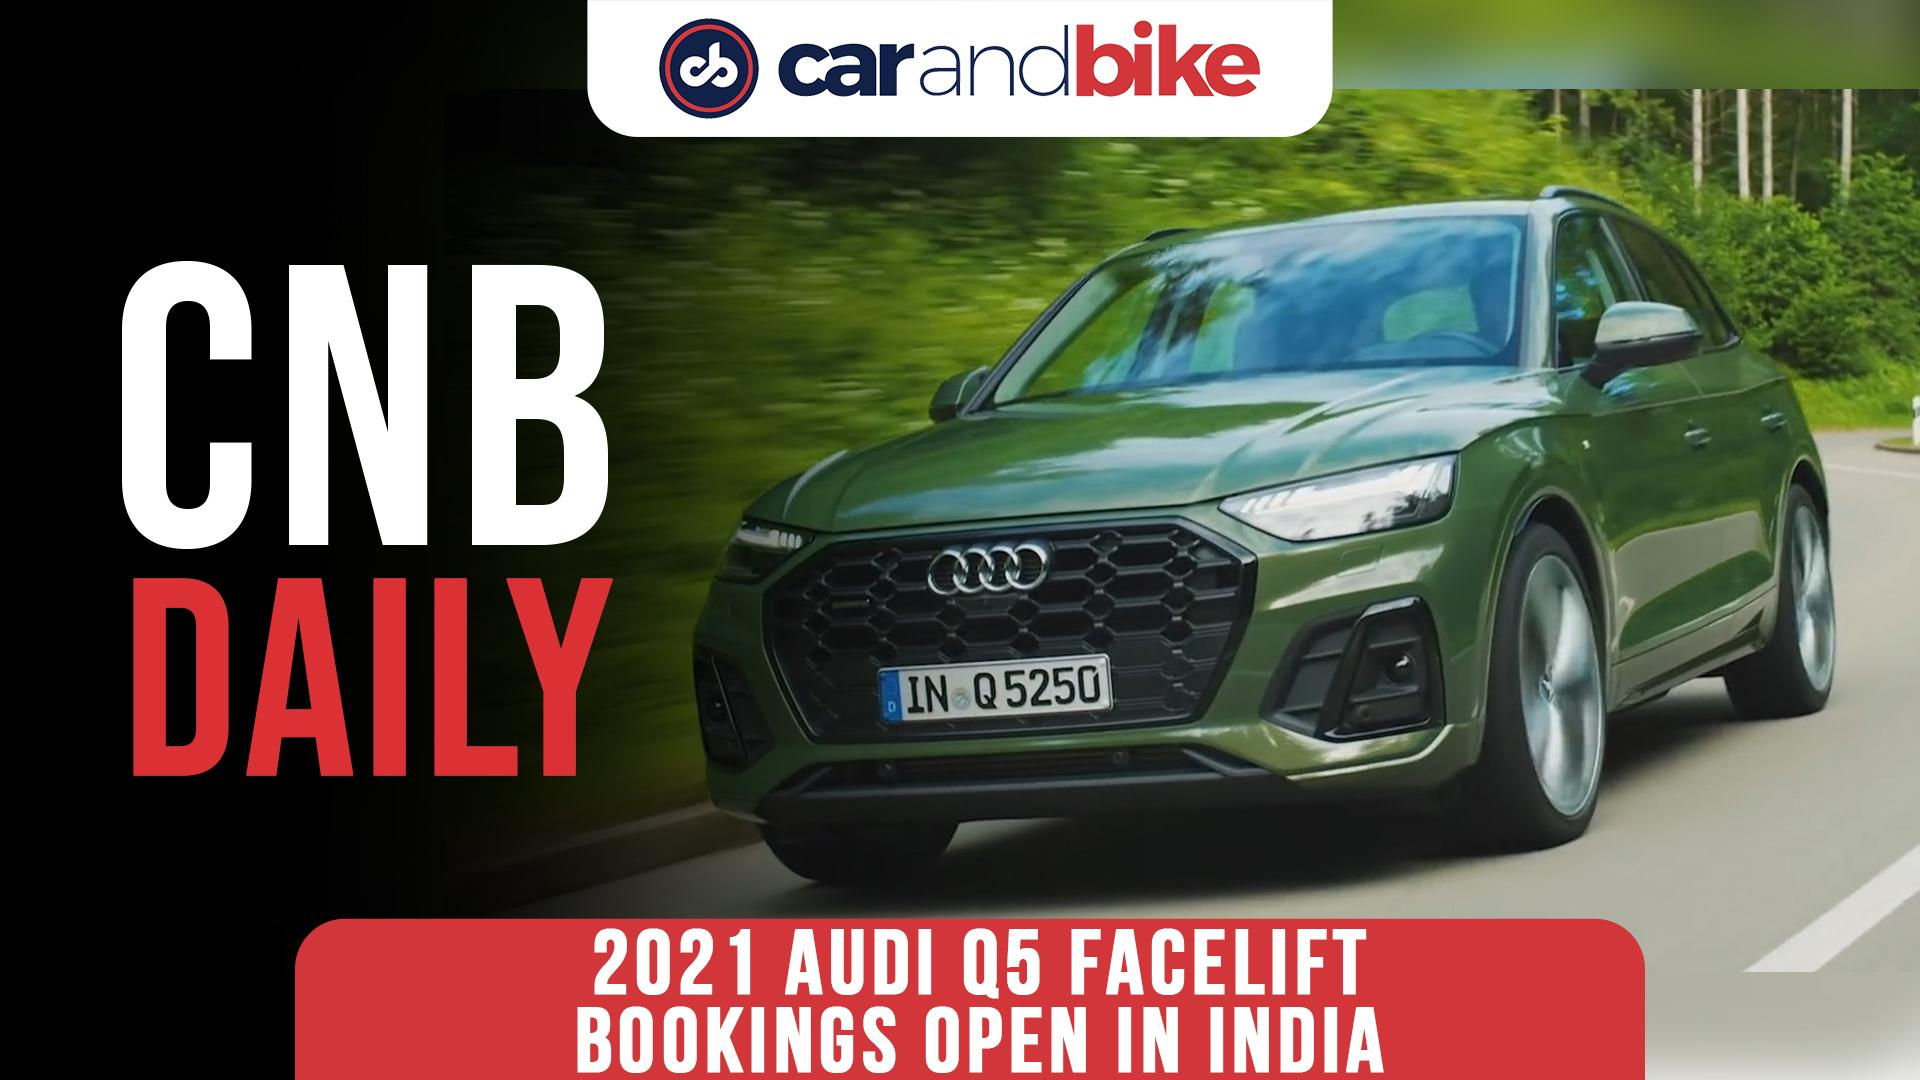 2021 Audi Q5 facelift bookings opened in India